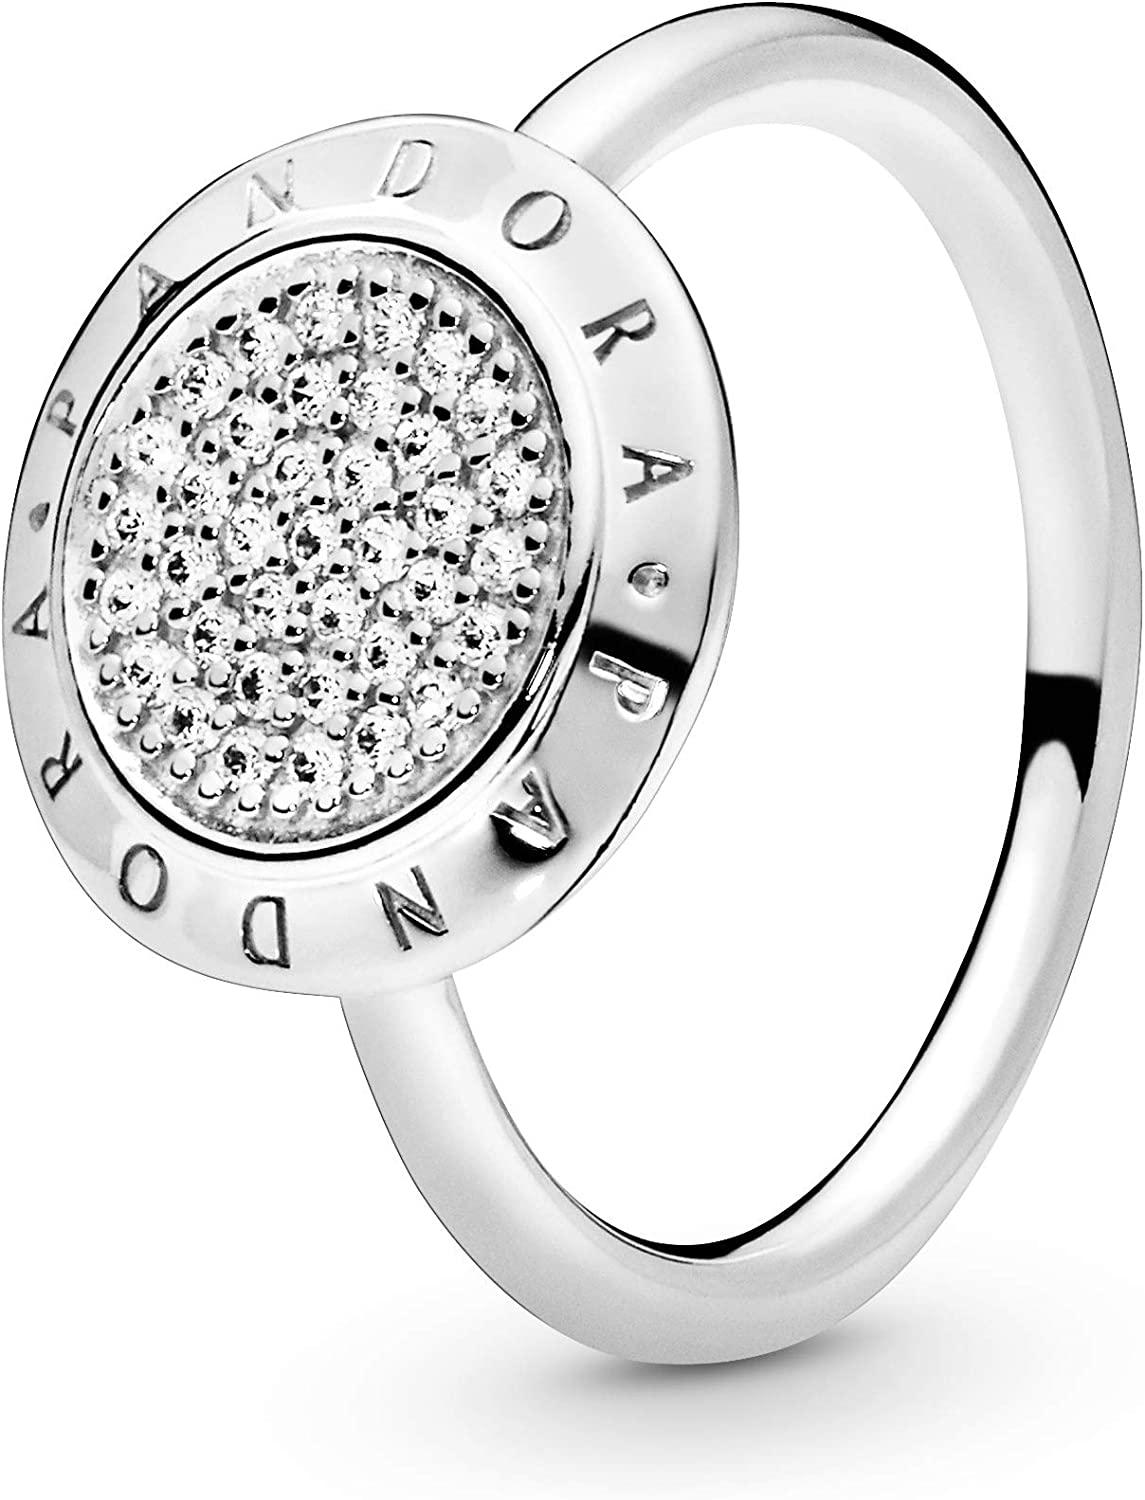 Pandora Jewelry Logo Cubic Zirconia Ring in Sterling Silver